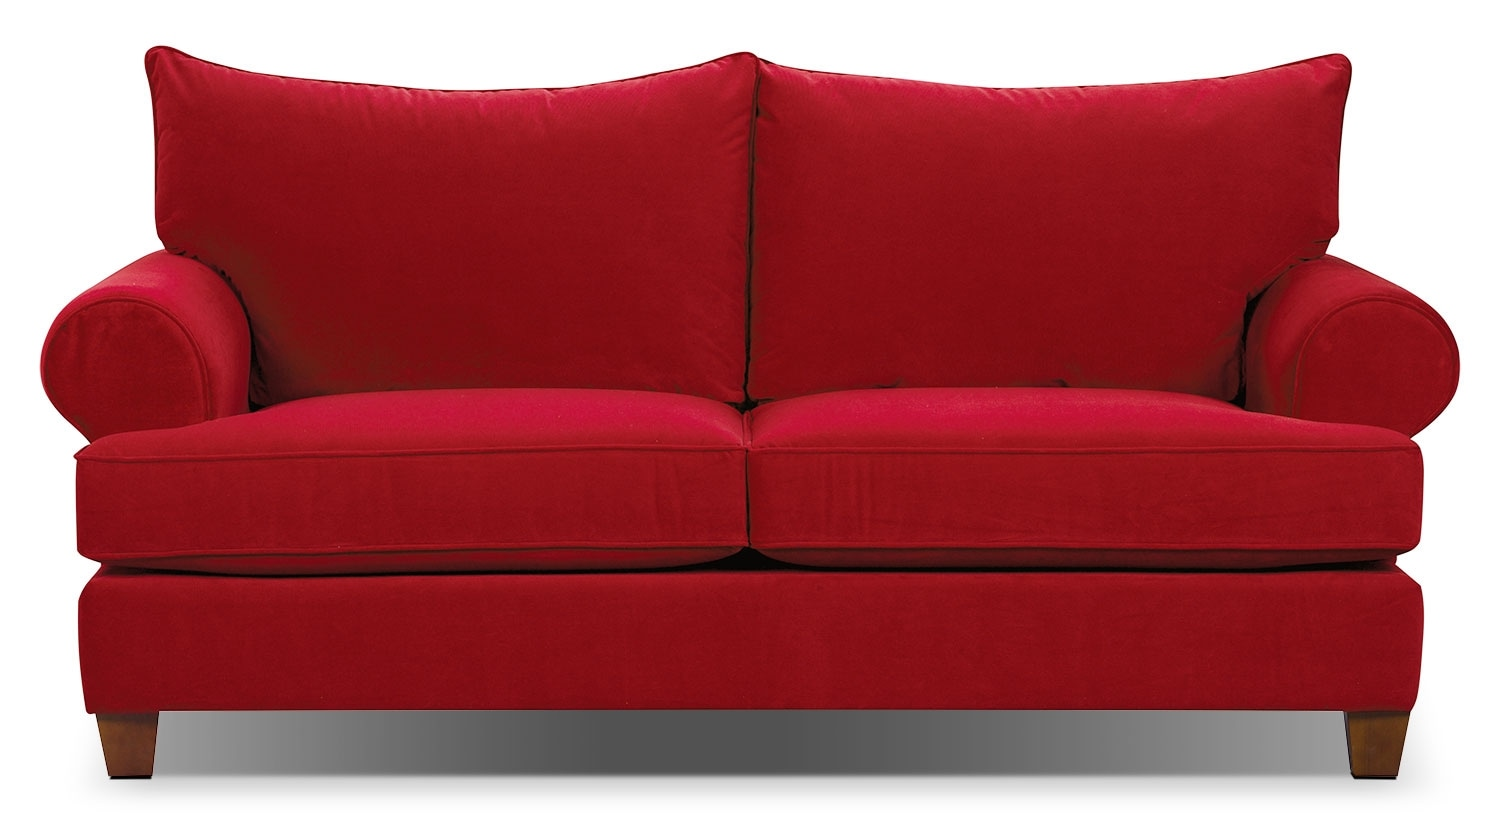 Living Room Furniture - Paige Microsuede Full-Size Sofa Bed - Red